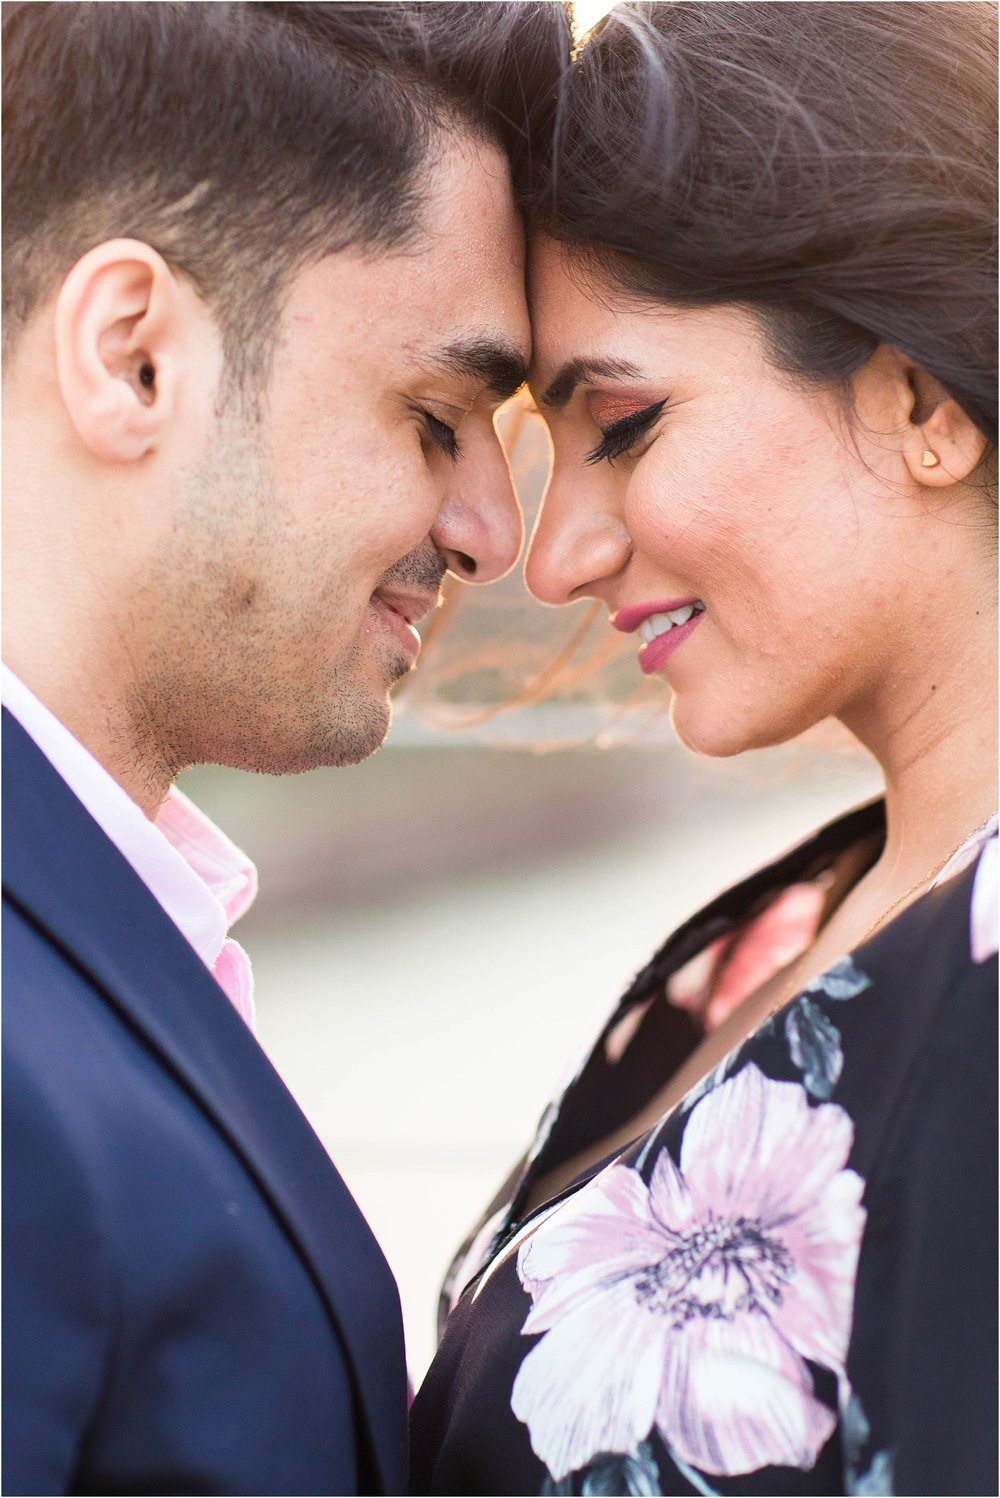 Ryerson-University-Humber-Bay-Bridge-Engagement-Session-Toronto-Mississauga-Brampton-Scarborough-GTA-Pakistani-Indian-Wedding-Engagement-Photographer-Photography_0031.jpg